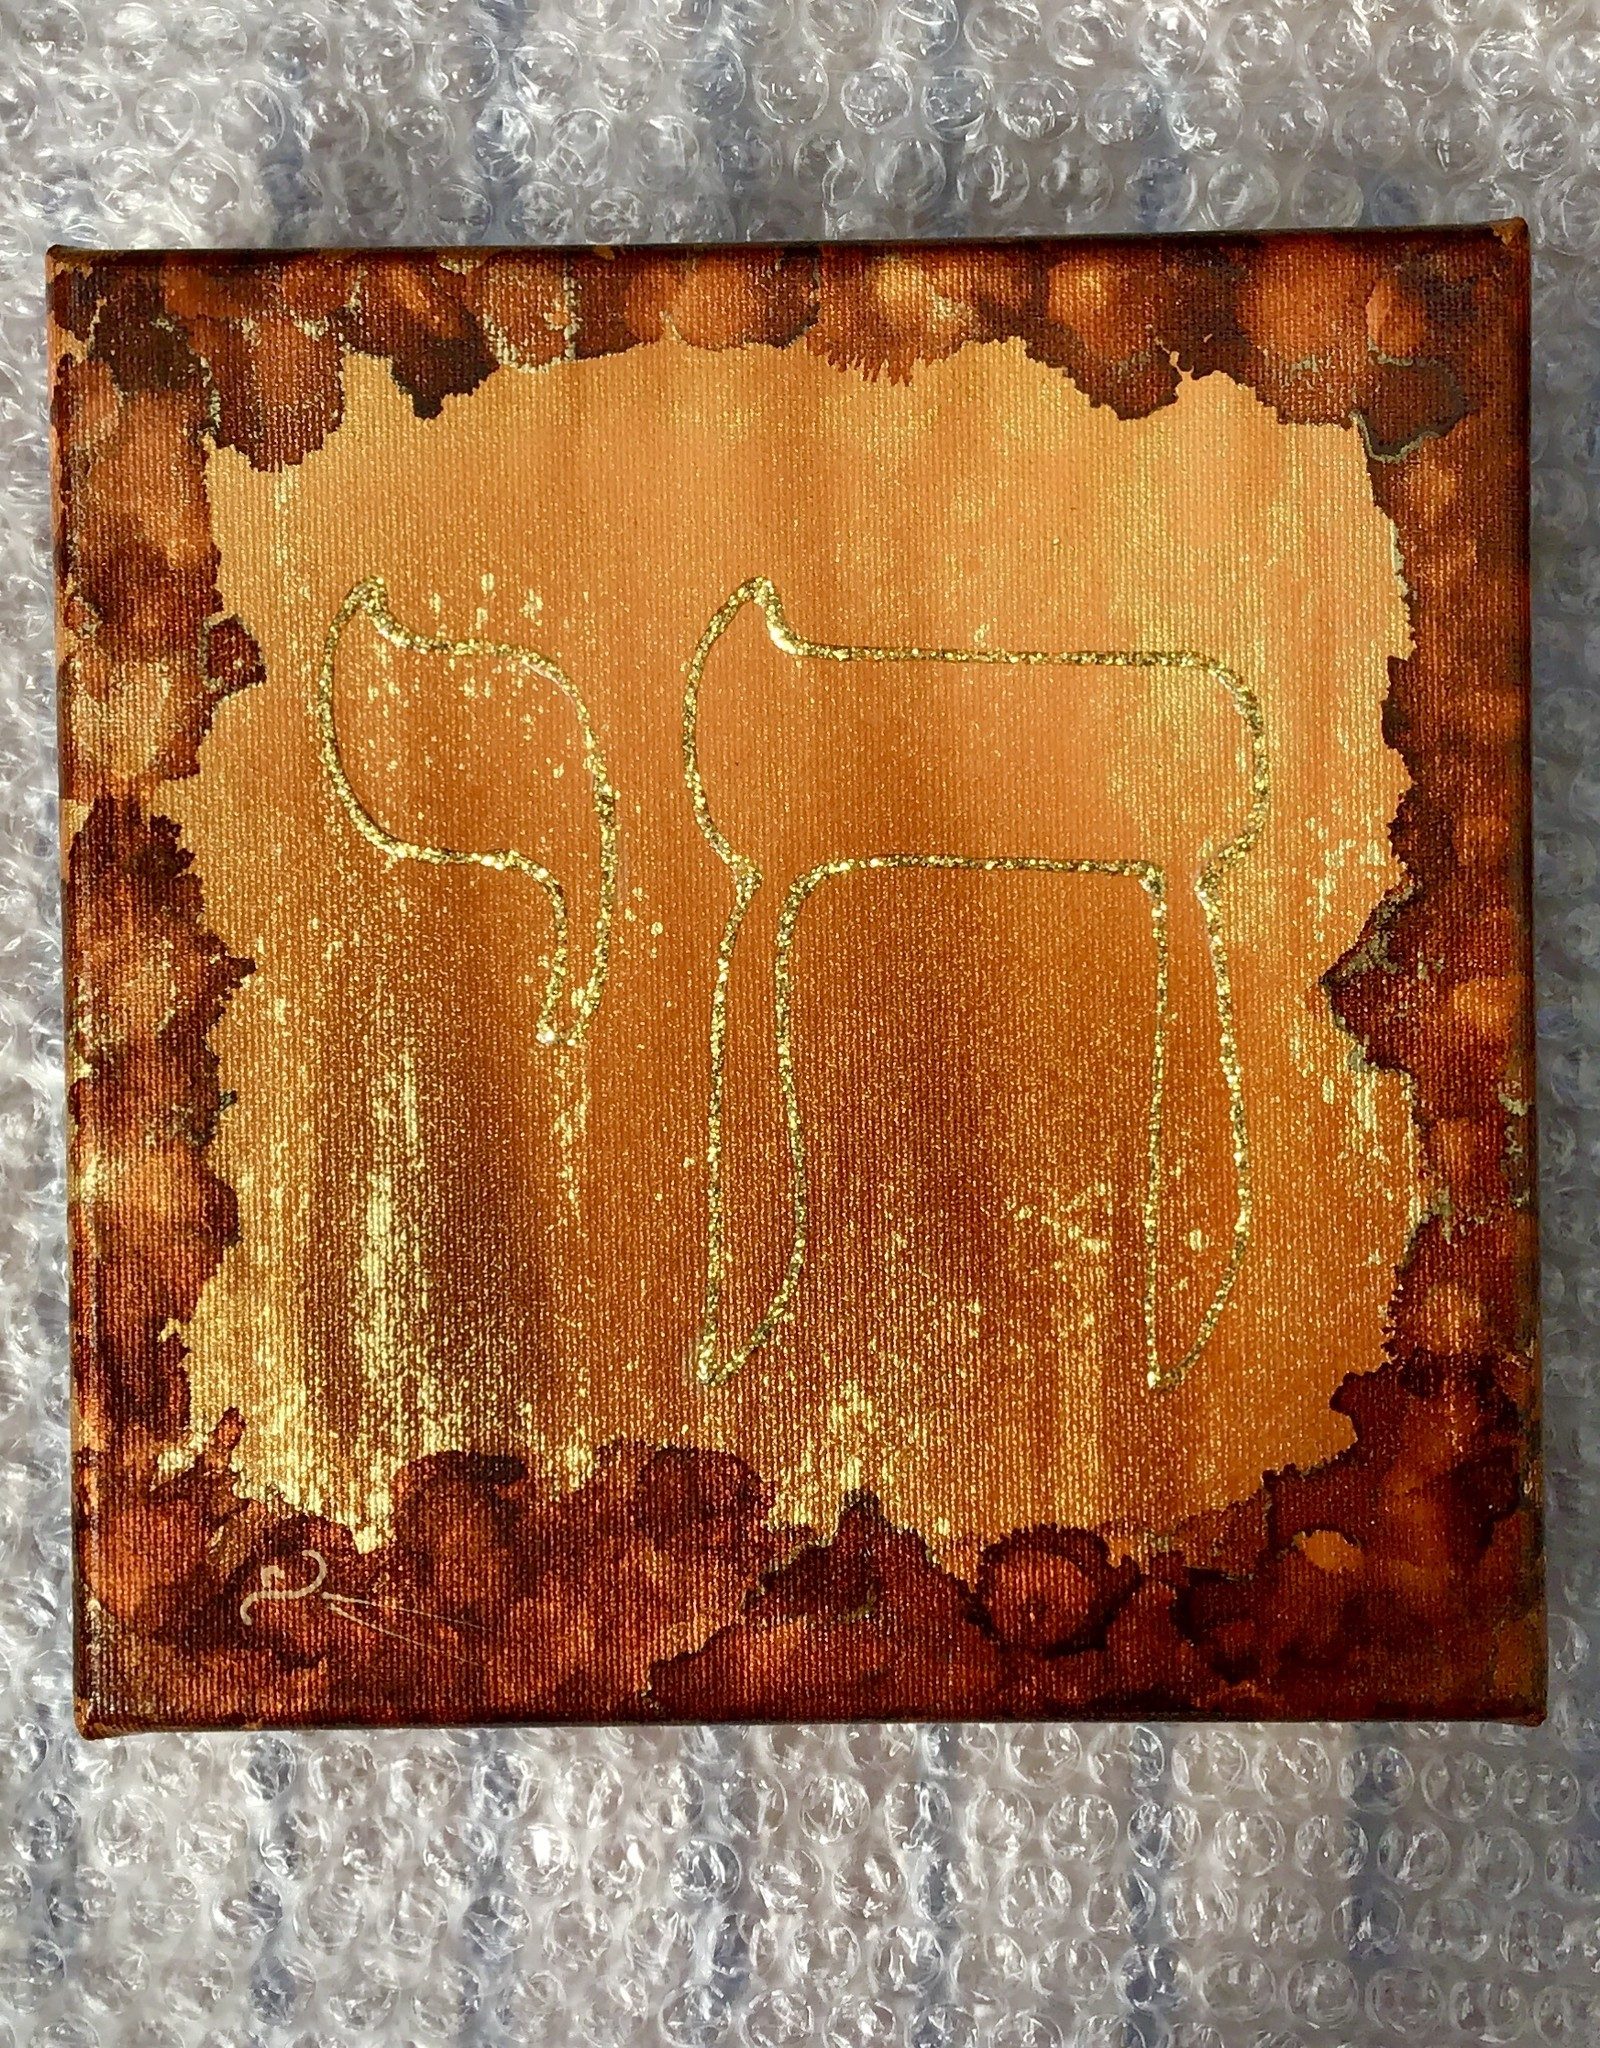 Chaipainter Chai painting with golden sun rays. Warm orange with gold and a little reddish brown.